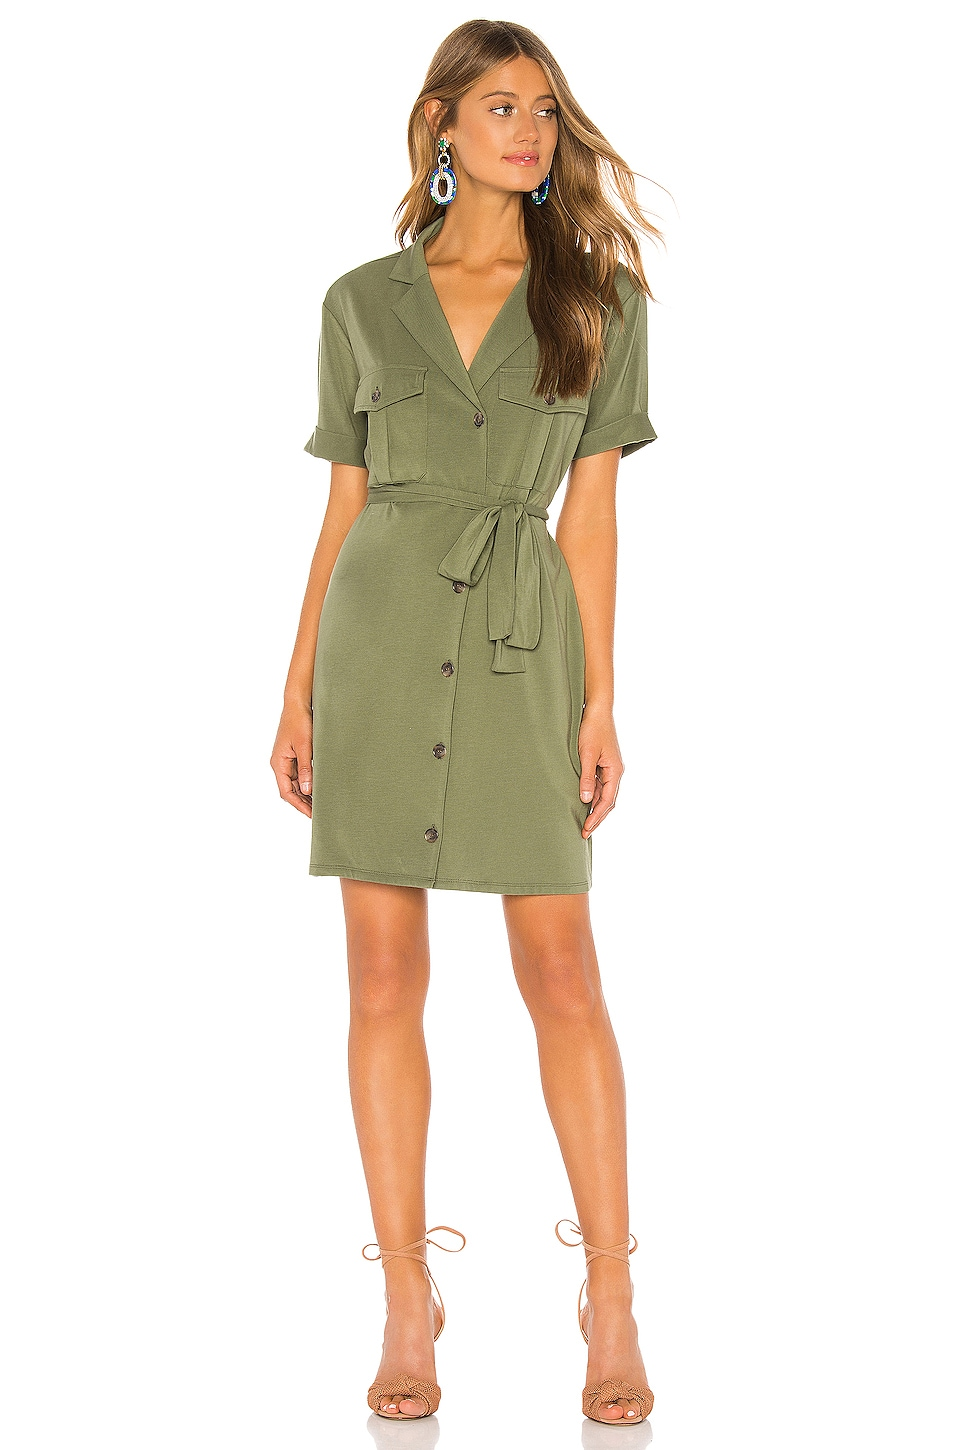 Joie Jadallah Shirt Dress in Canopy